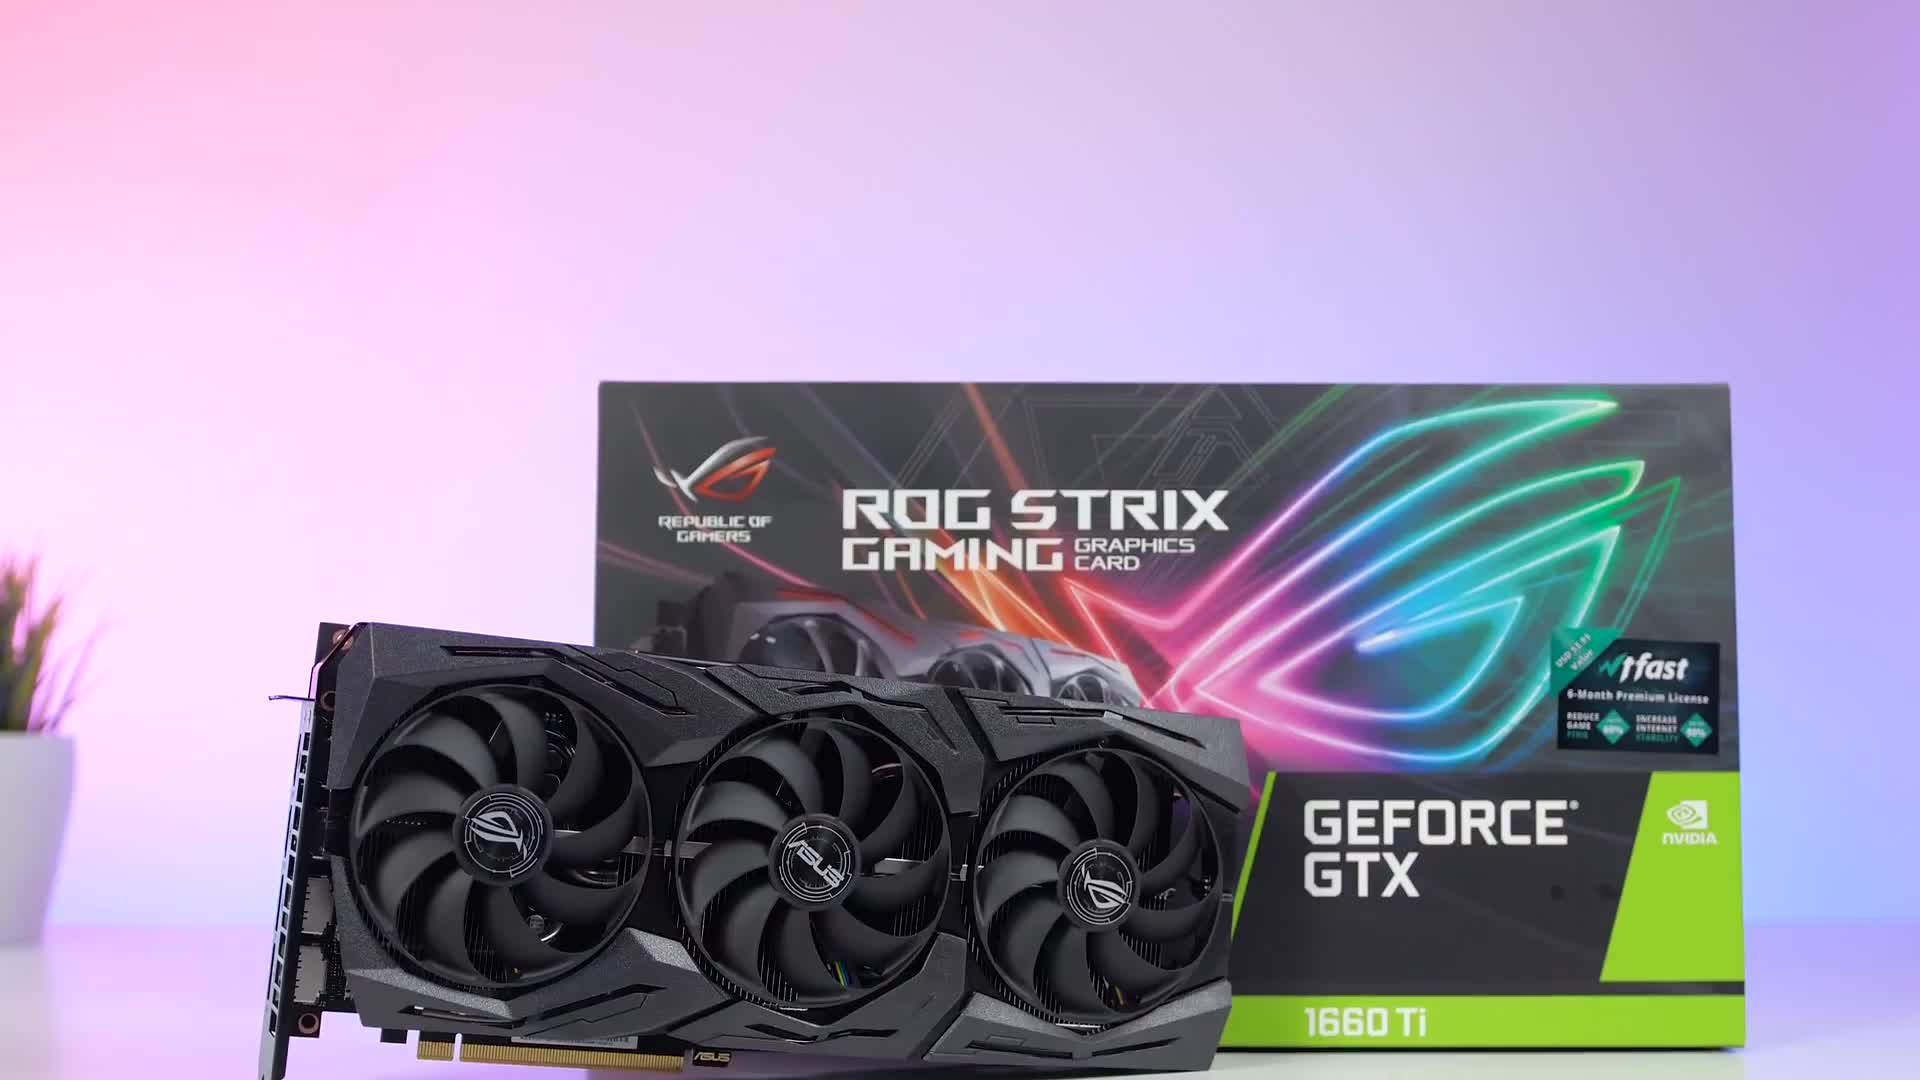 Test, Asus, Nvidia, Grafikkarte, Zenchilli, Zenchillis Hardware Reviews, Gtx, GTX 1660 TI, GTX 1660, Asus GeForce GTX 1660 Ti Strix OC, Asus GeForce GTX 1660 Ti Strix, GeForce GTX 1660 Ti